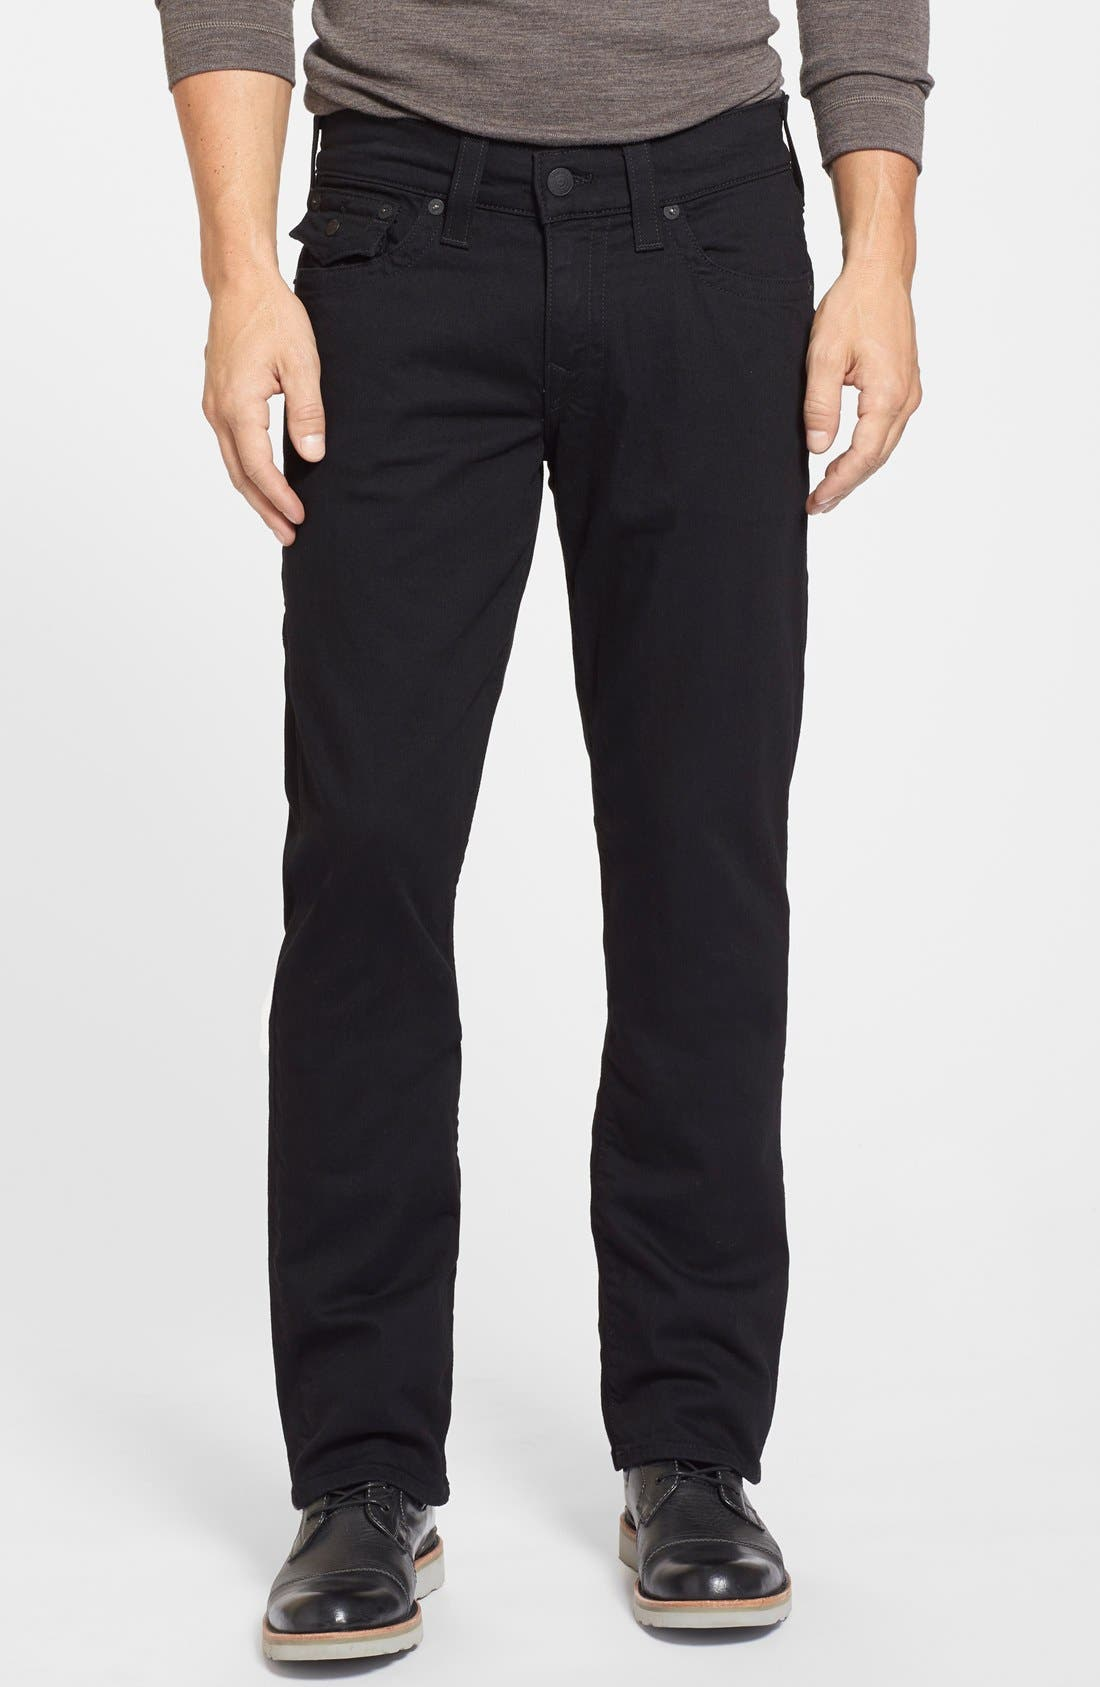 Ricky Relaxed Fit Jeans,                         Main,                         color, 002